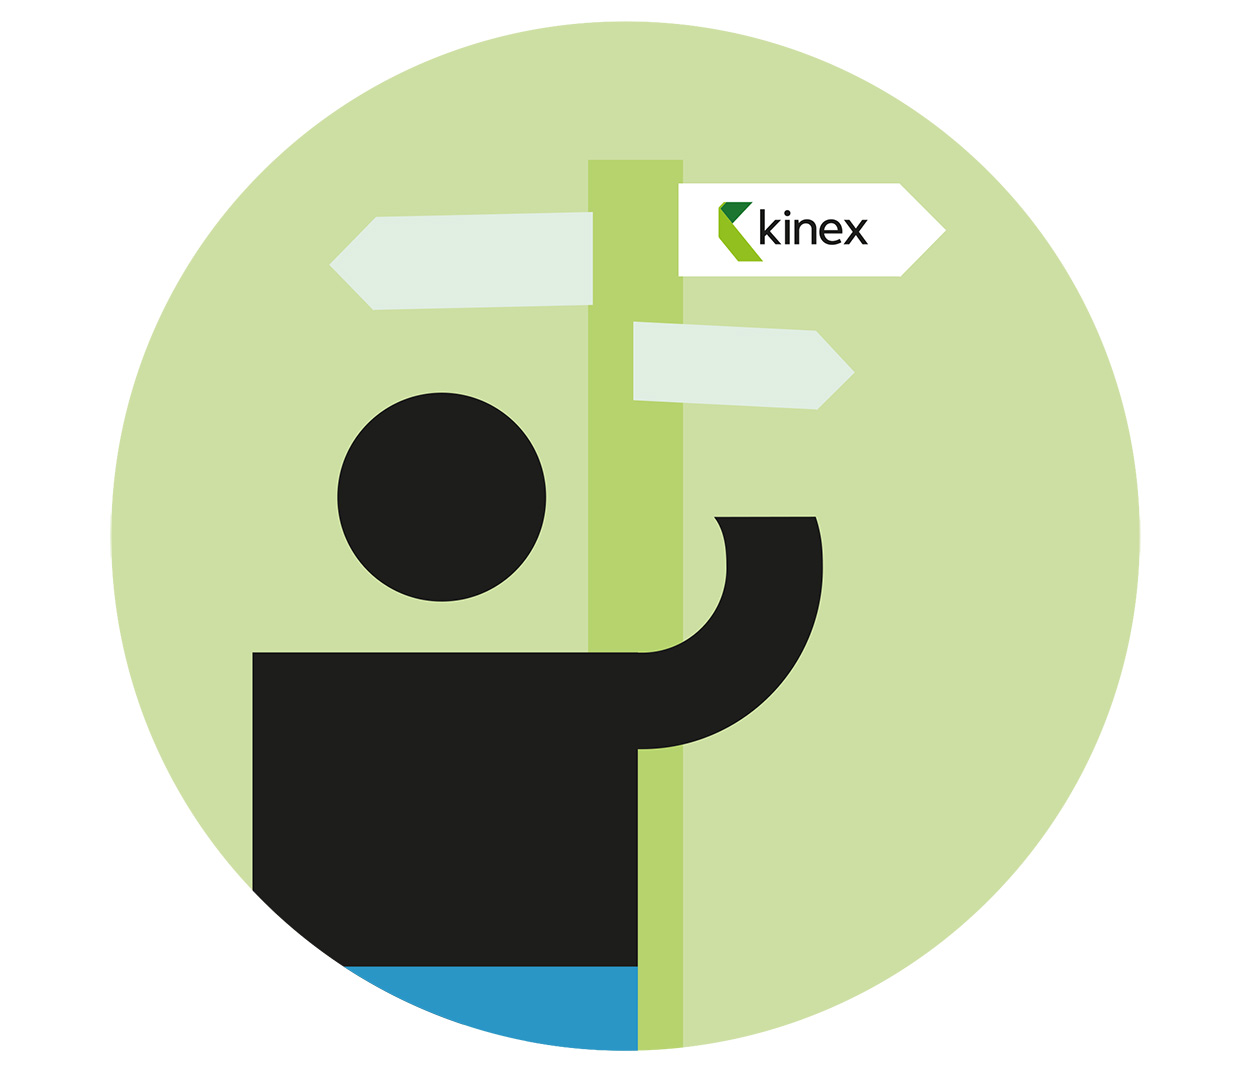 kinex switching sign